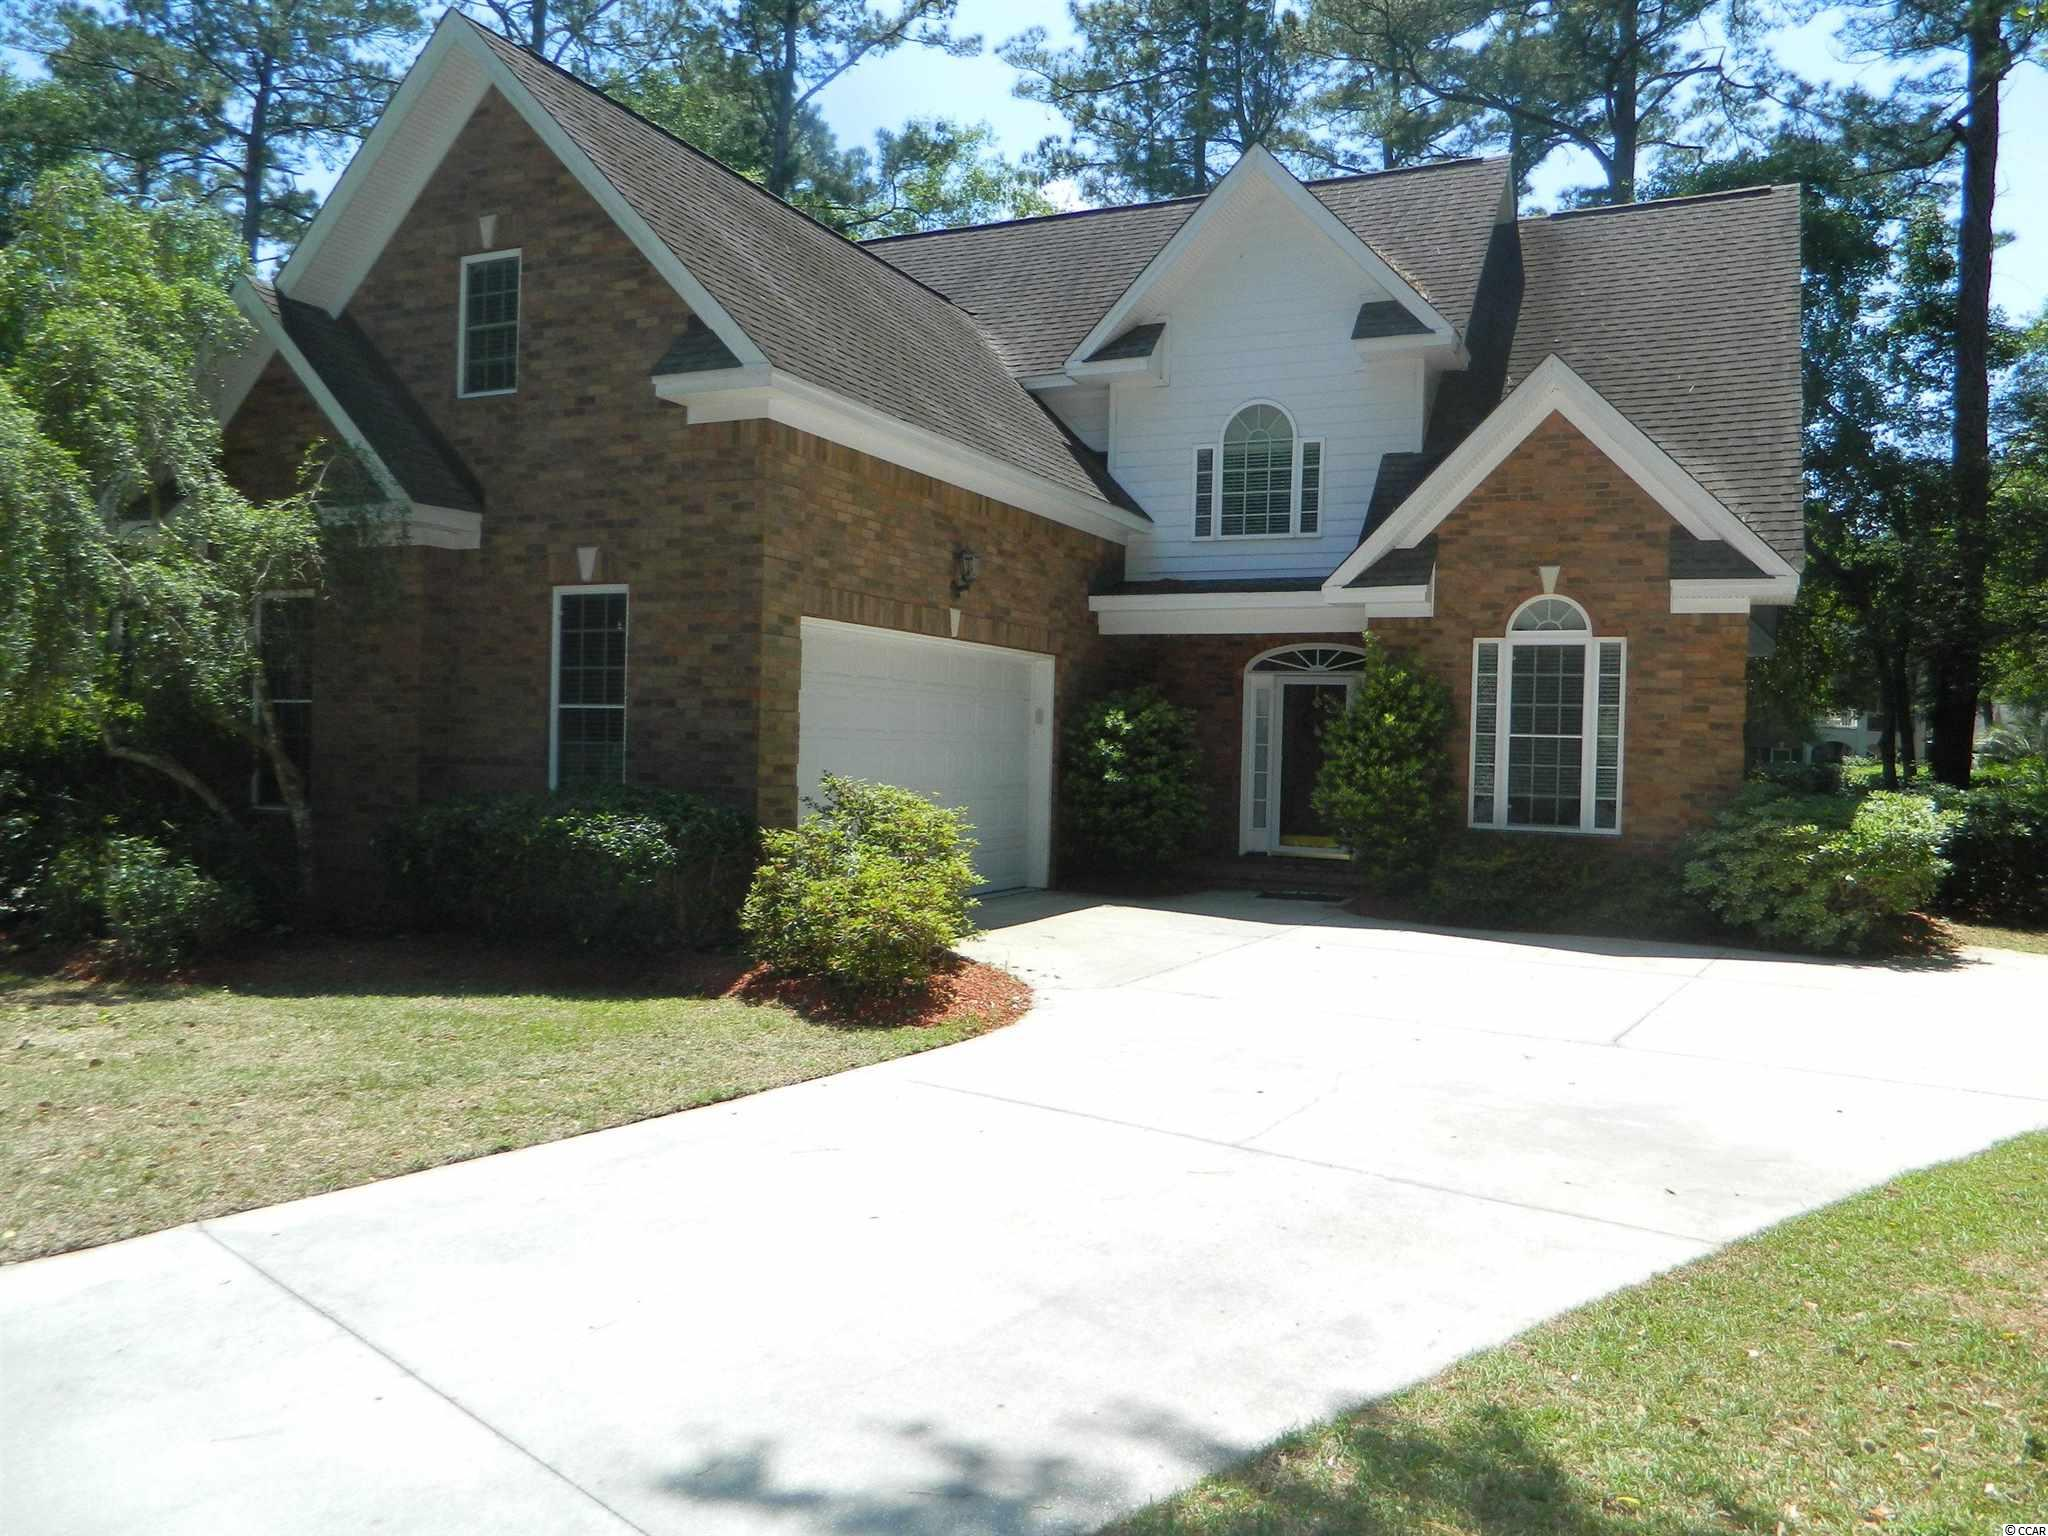 This all brick home is located in the highly desirable gated community of Heritage Plantation. Master bedroom is downstairs with a half bath. Two more bedrooms upstairs with a large bonus room. This house has a screened in porch that has been converted into a 3 season room with plenty of privacy. The backyard patio is an ideal area to grill out. This is a golf course community and has many amenities such as a pool, clubhouse, tennis courts and access to the marina located in Heritage Plantation.